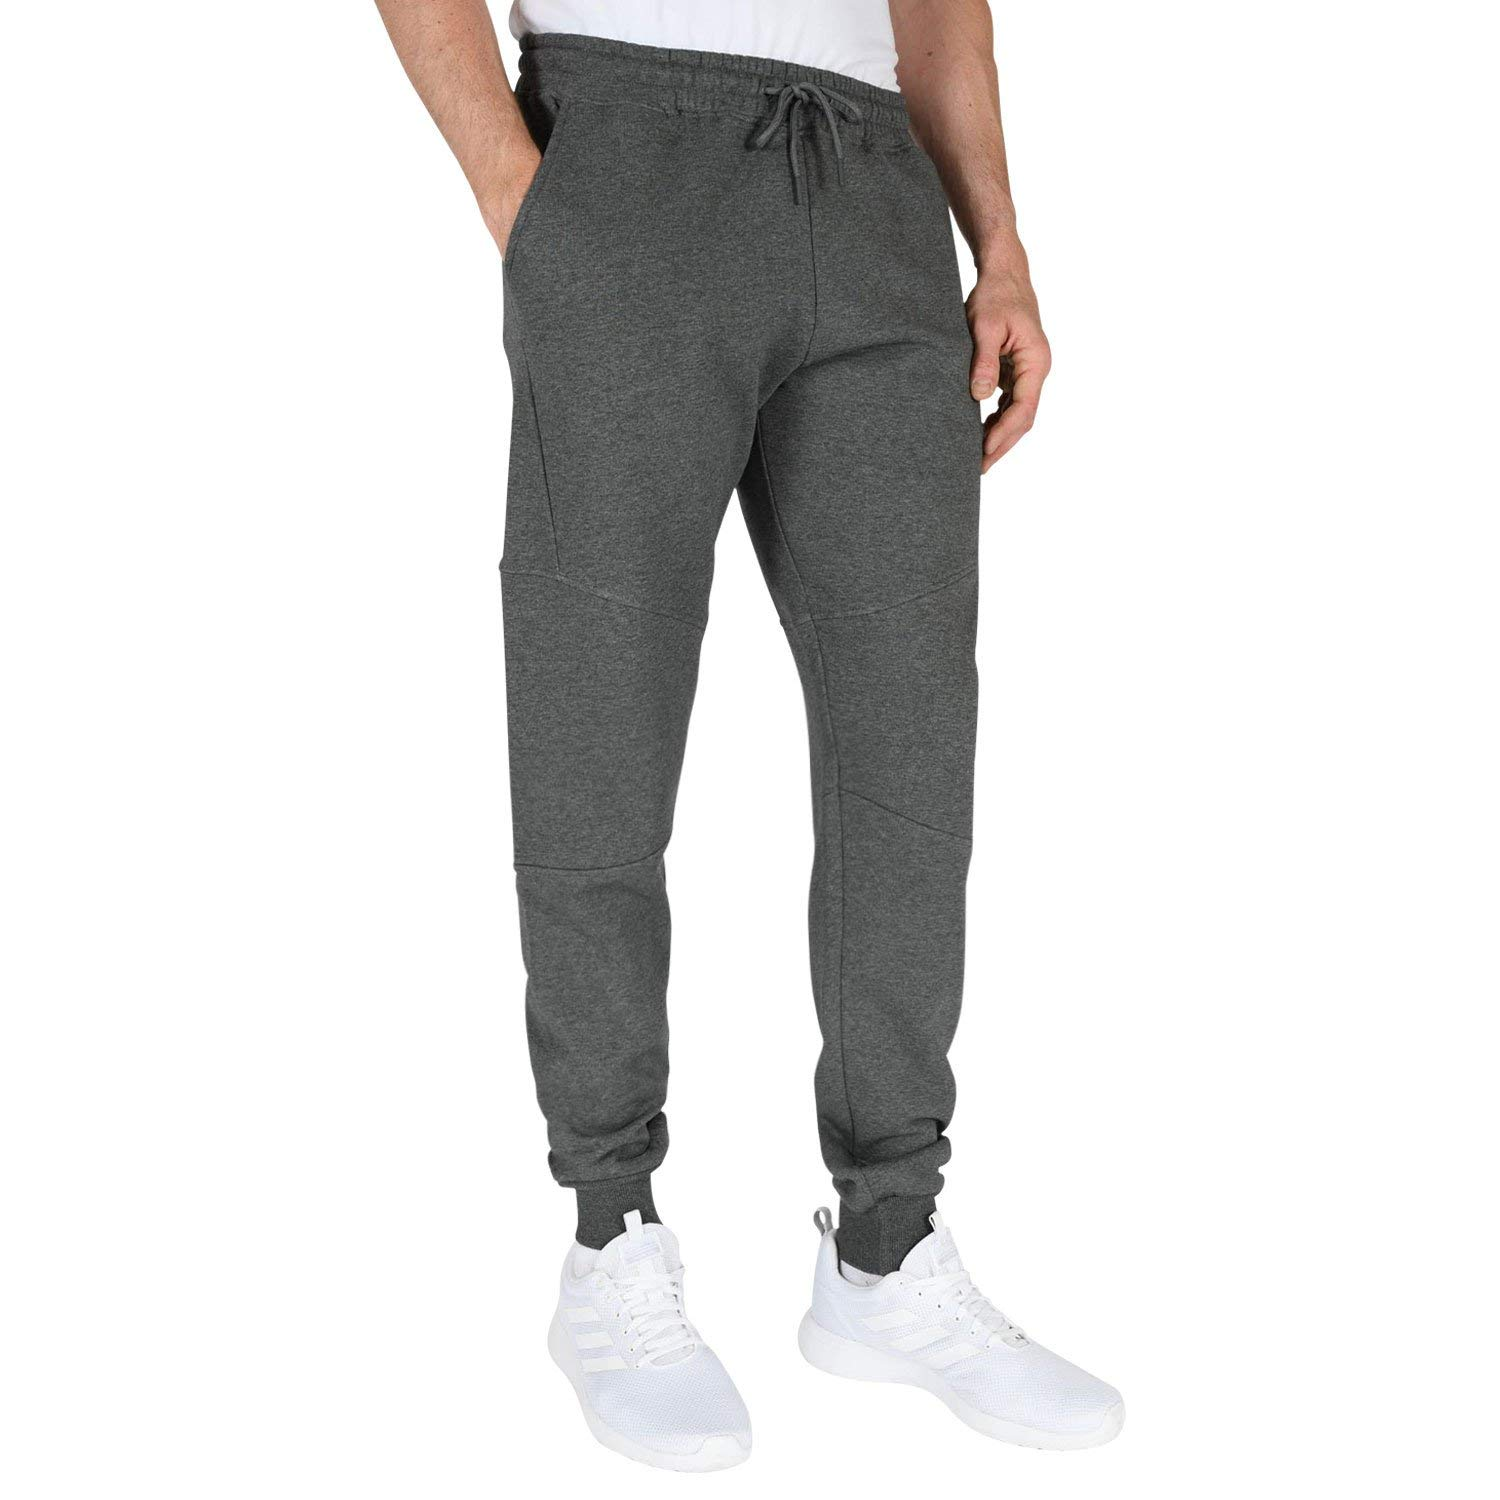 Zimaes-Men Loose Cozy Oversize Elastic Bottom Jogger Pant Trousers